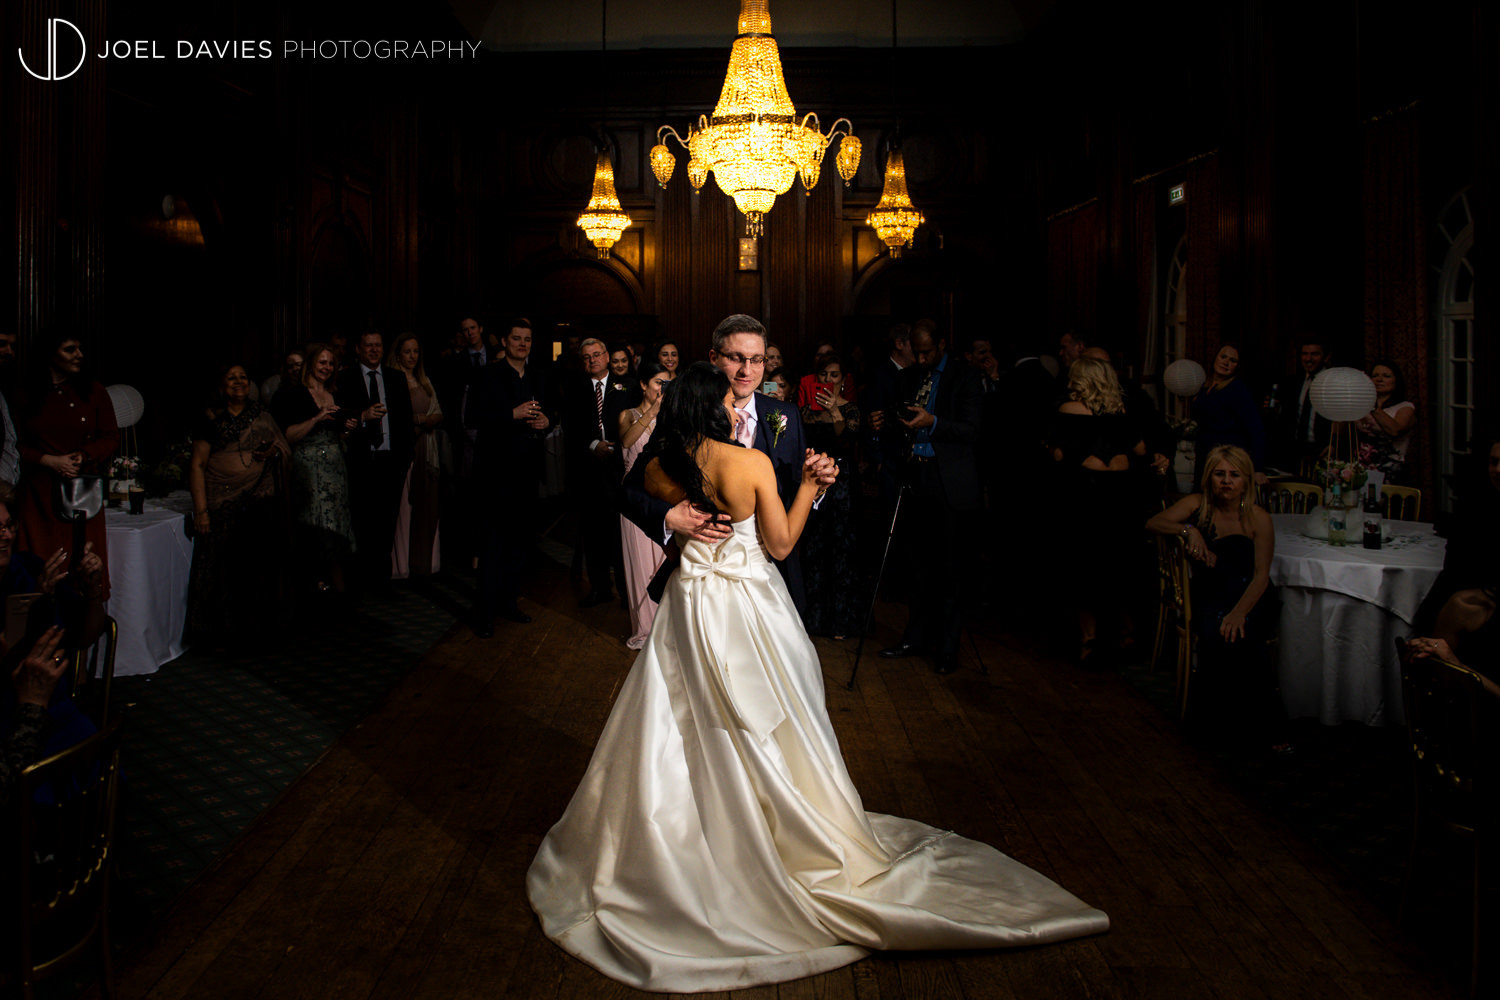 Joel Davies Photography - Weddings 1500-